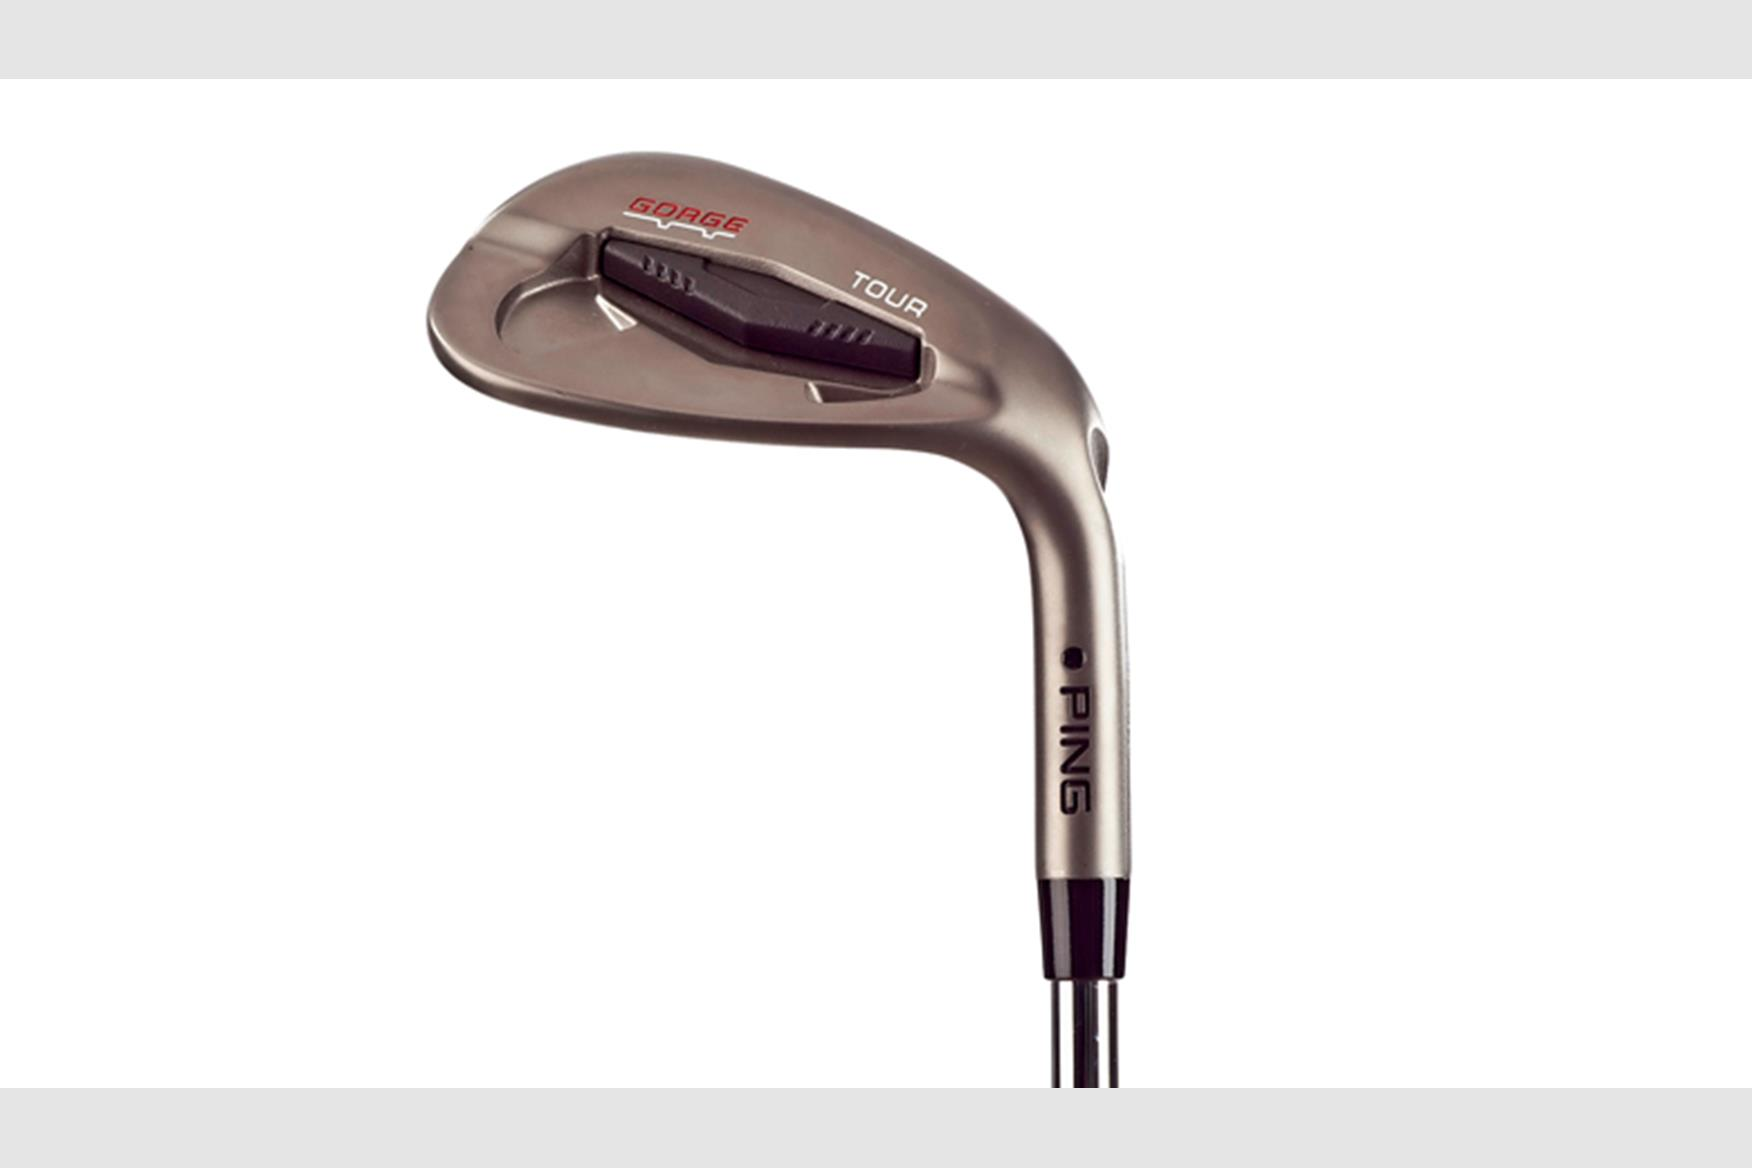 d24bade460a Ping Tour Gorge Wedge Review   Equipment Reviews   Today's Golfer